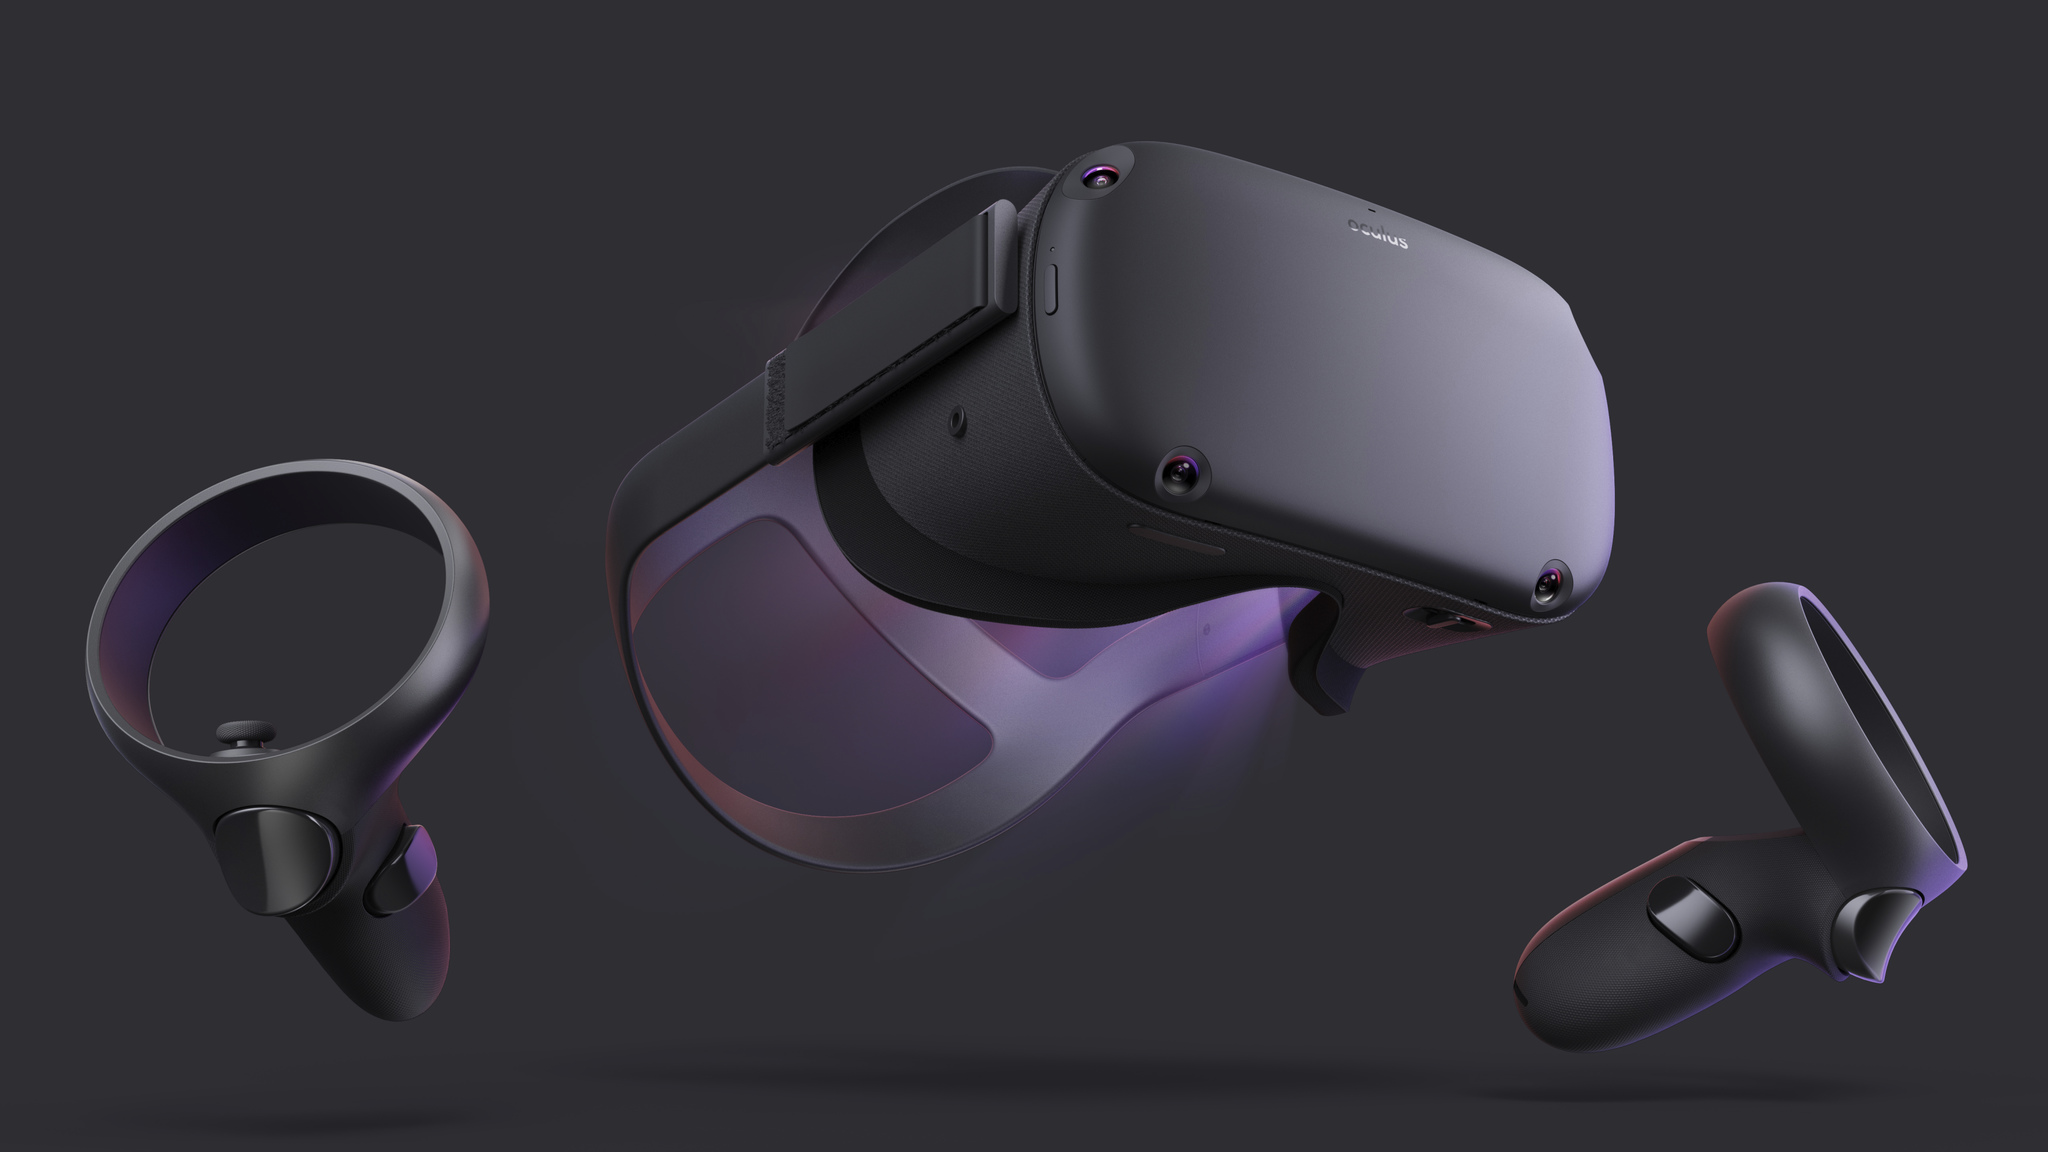 95057505a59 Oculus Quest is a new